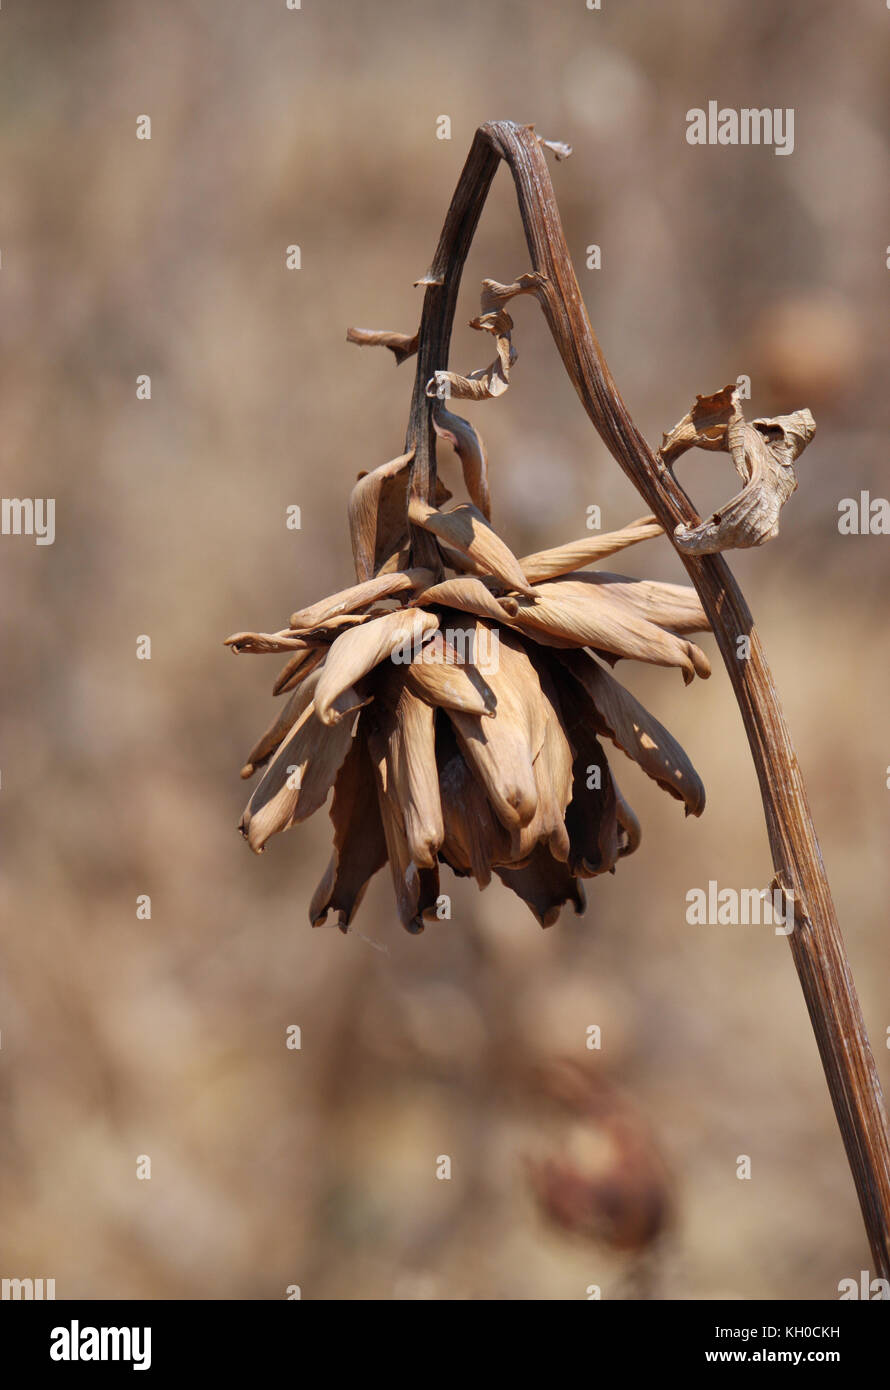 Dried plant during heat wave in Greece - Stock Image